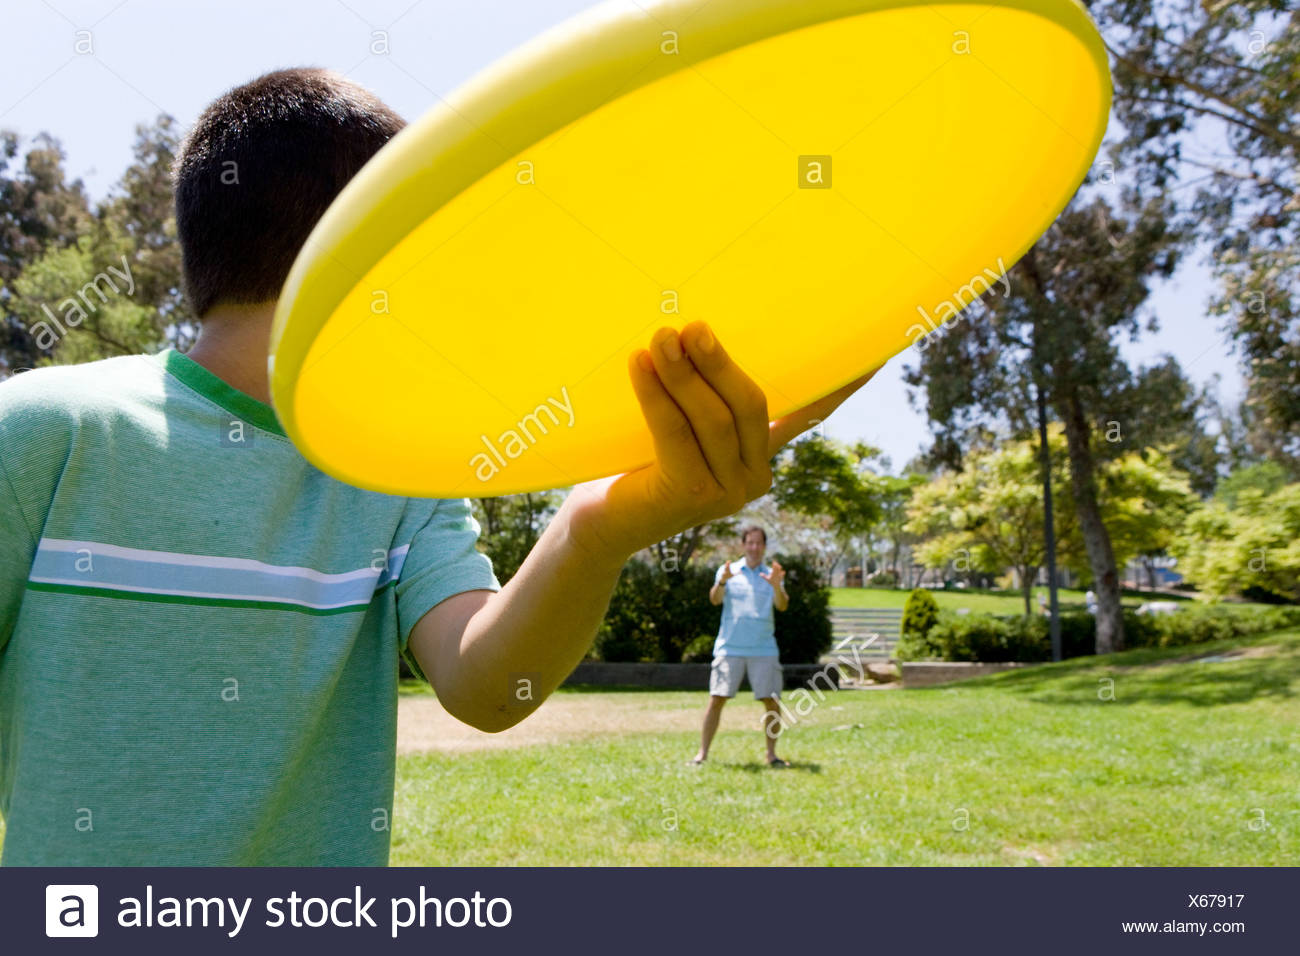 Boy (8-10) playing with plastic disc - Stock Image